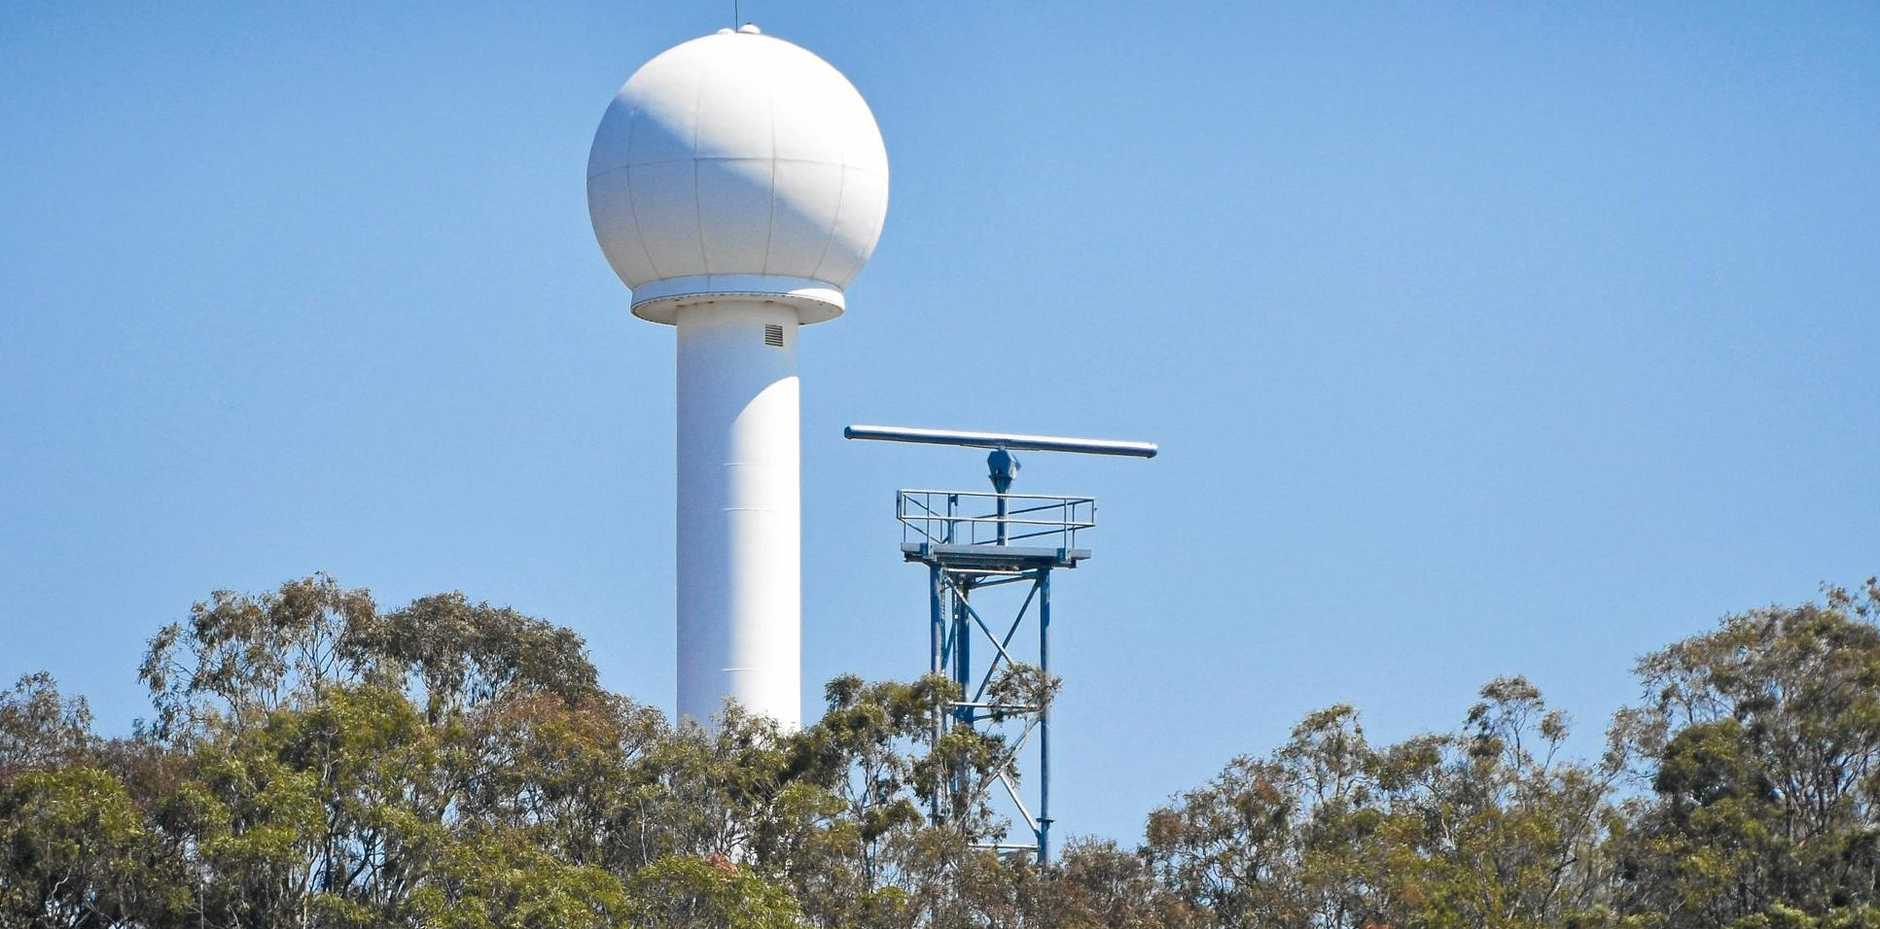 NEW TECH: The new Vessel Traffic Services radar tower on Radar Hill at South Gladstone will replace an existing tower on Facing Hill Island.